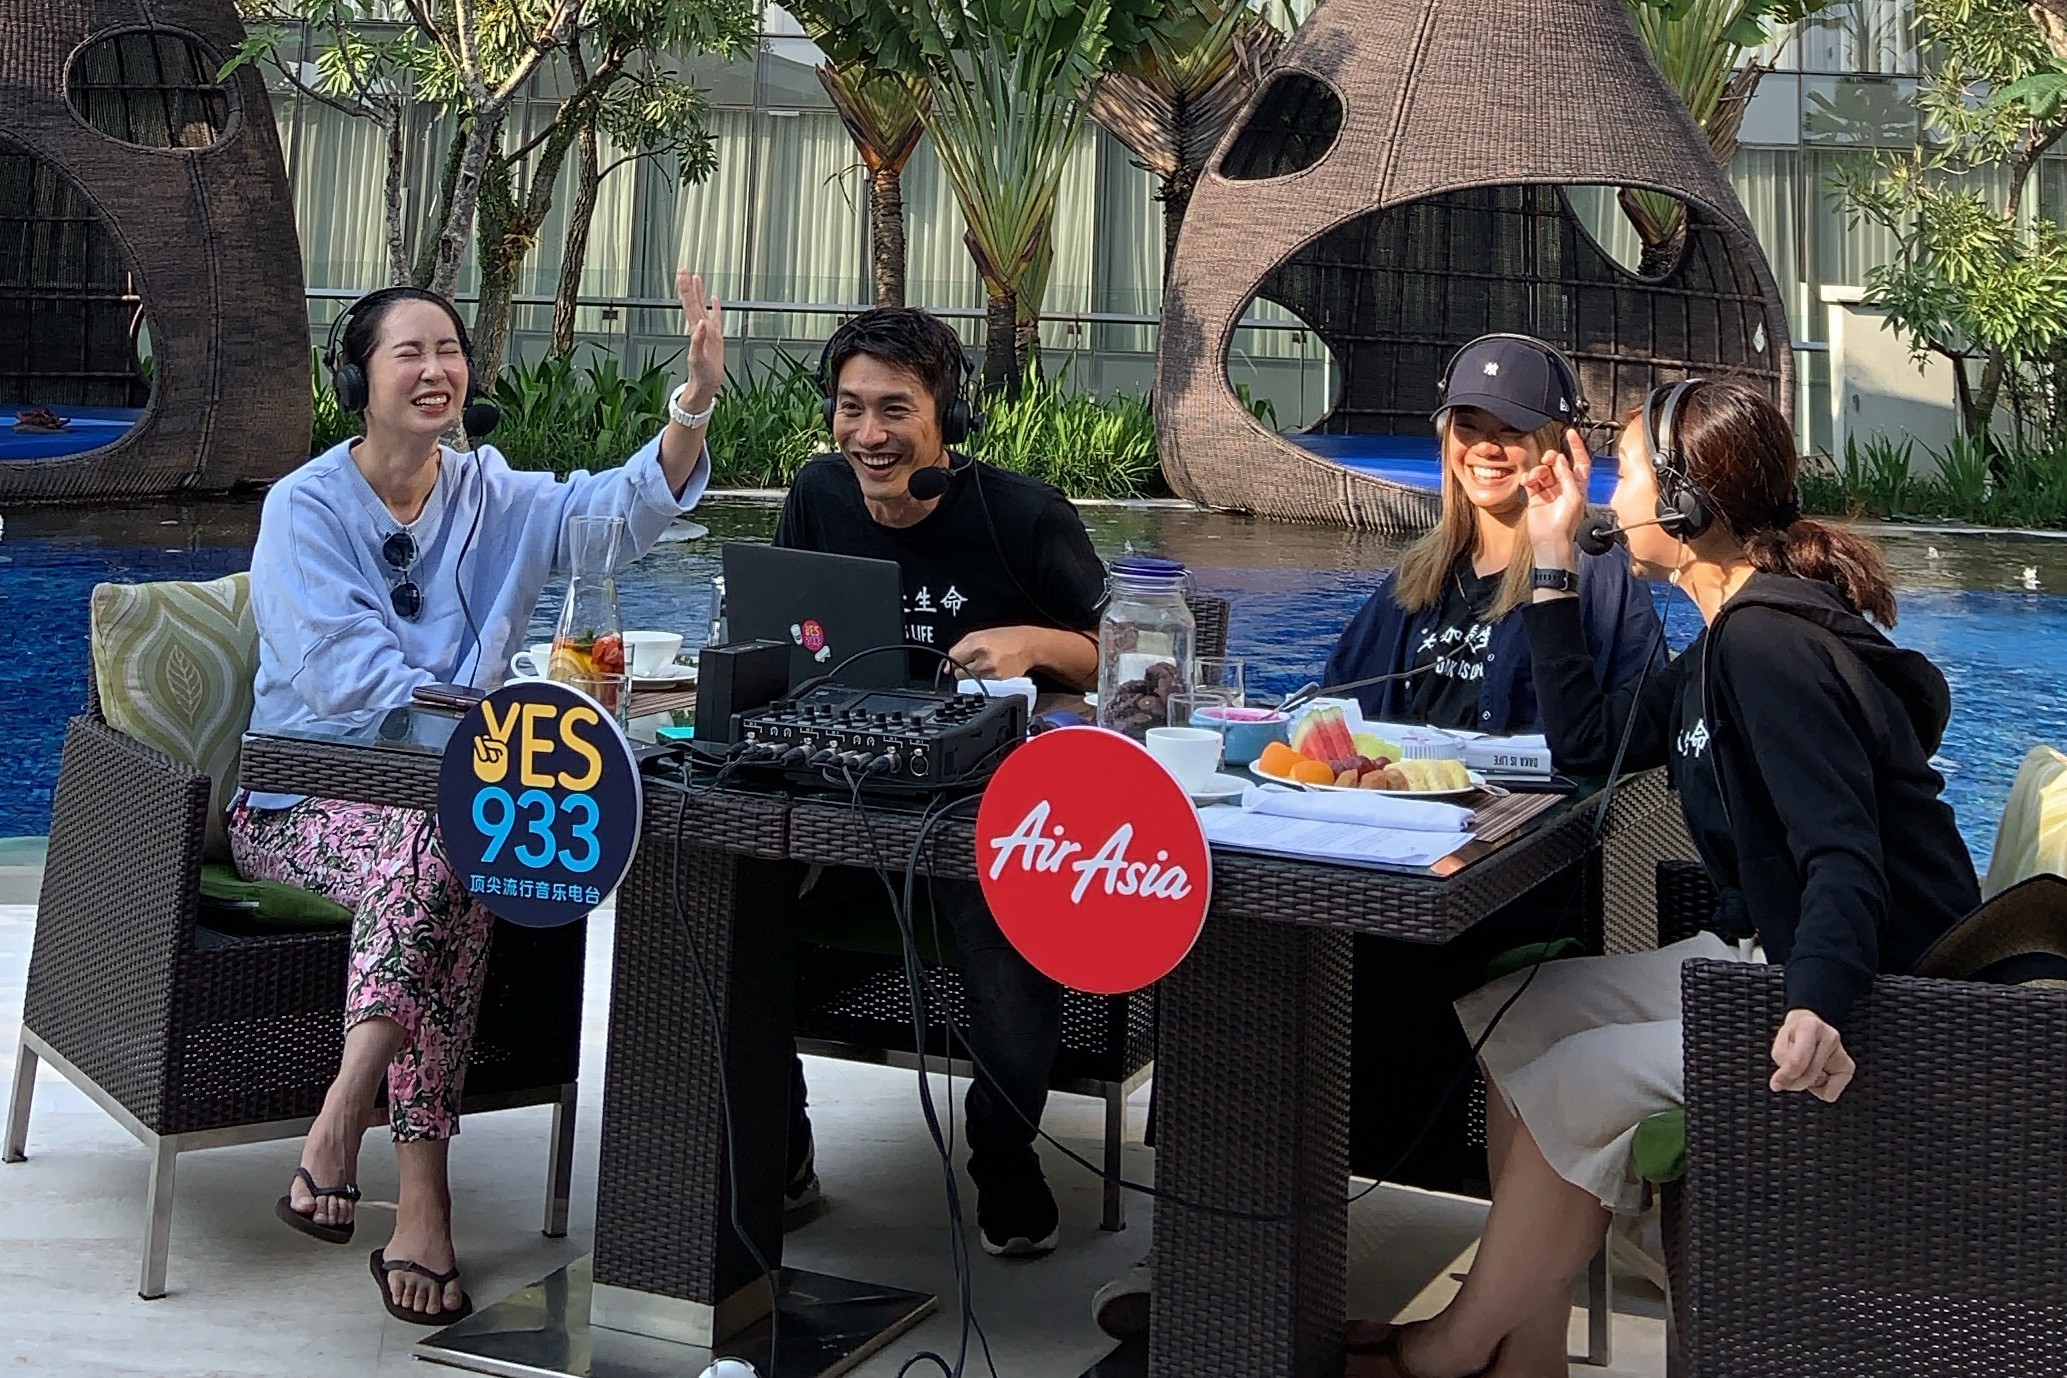 YES 933FM DJs doing a LIVE outdoor broadcast with Paige Chua in Bandung